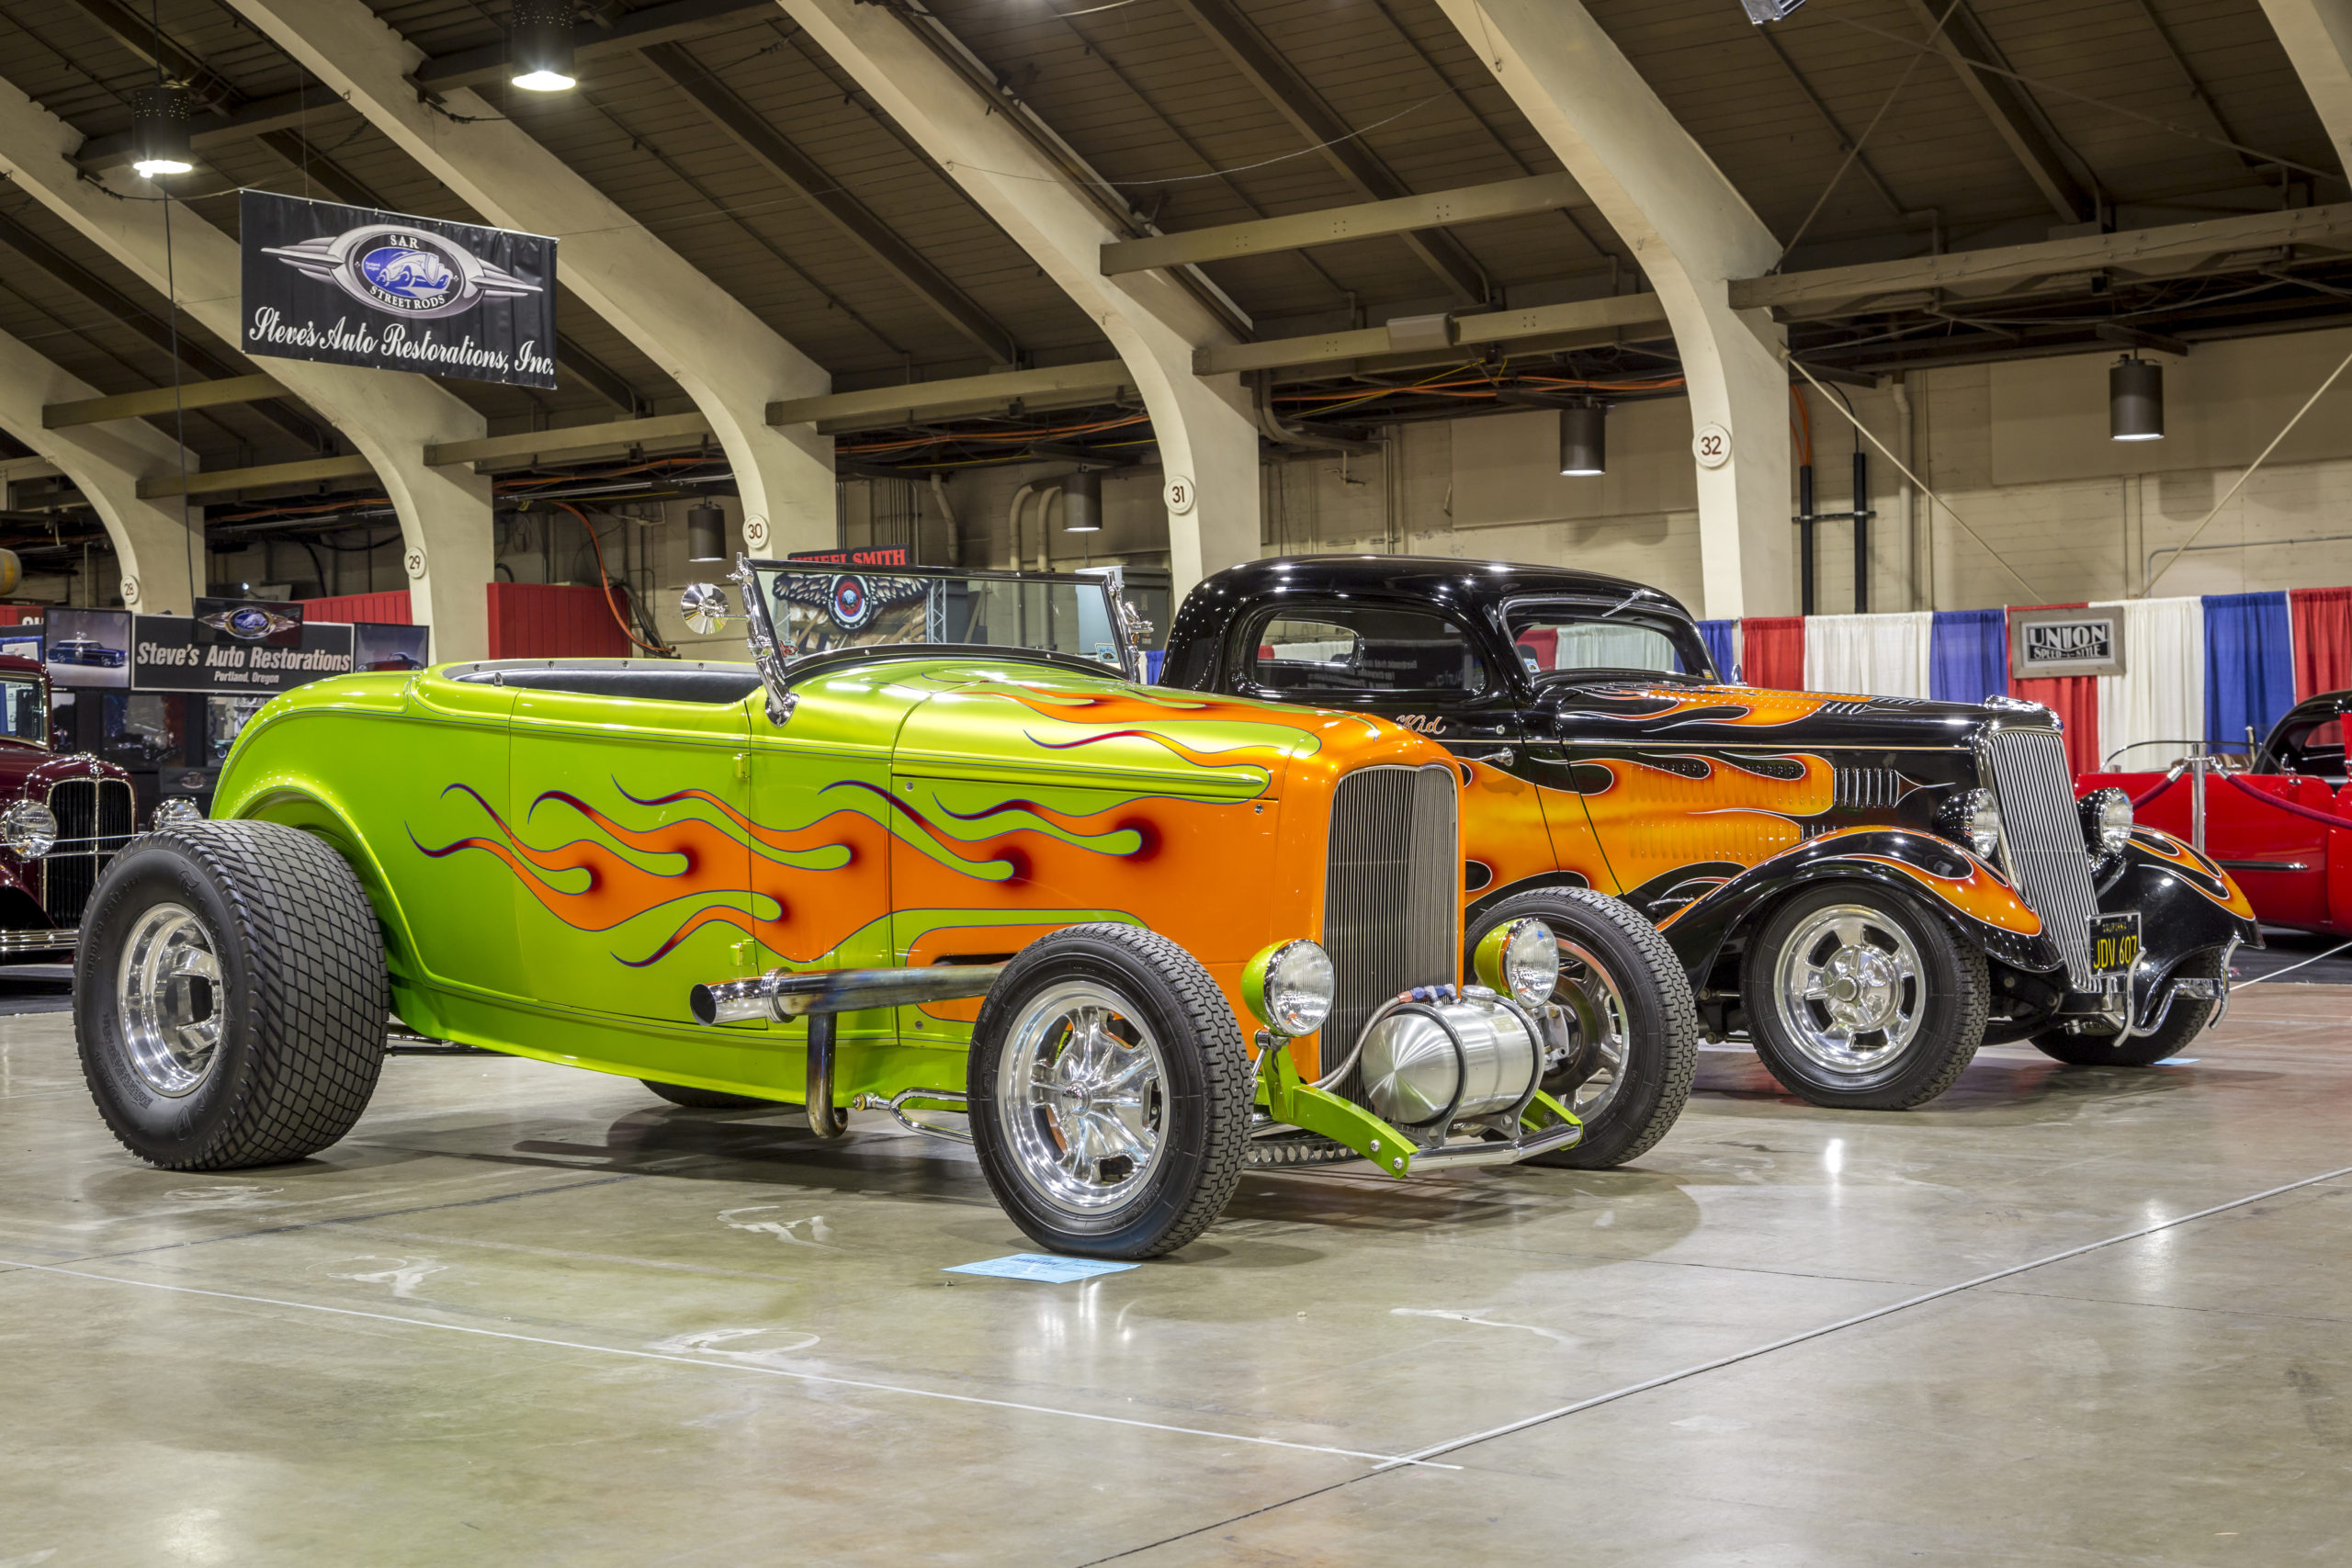 Grand National Roadster Show will hit its platinum anniversary this year